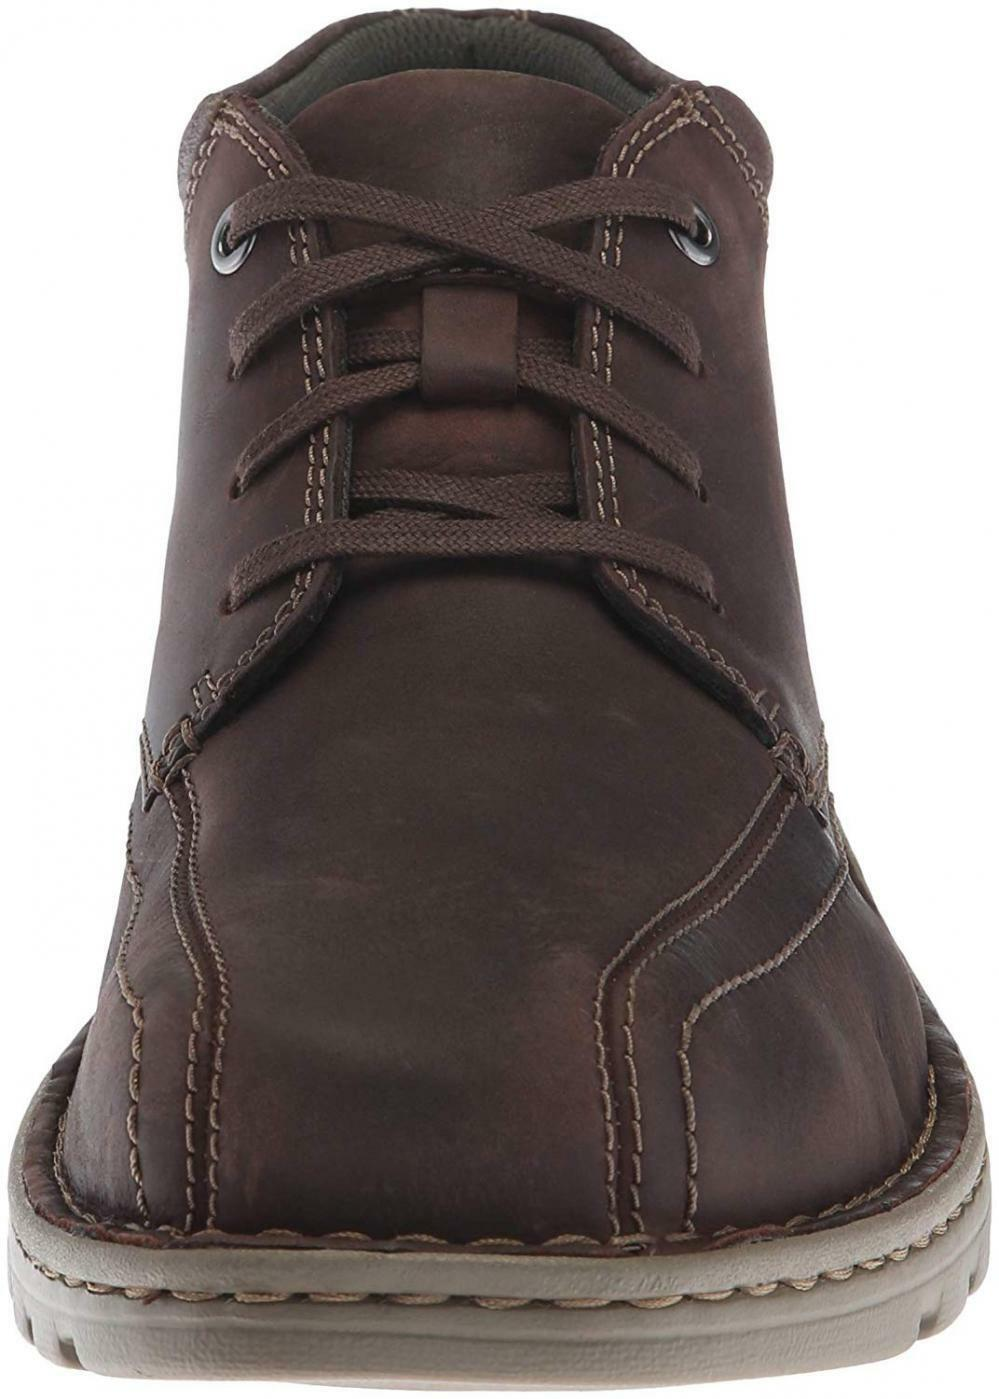 CLARKS Men's Vanek Mid Leather Ankle Boots Boots Boots Comfort Casual Walking shoes 6c3731